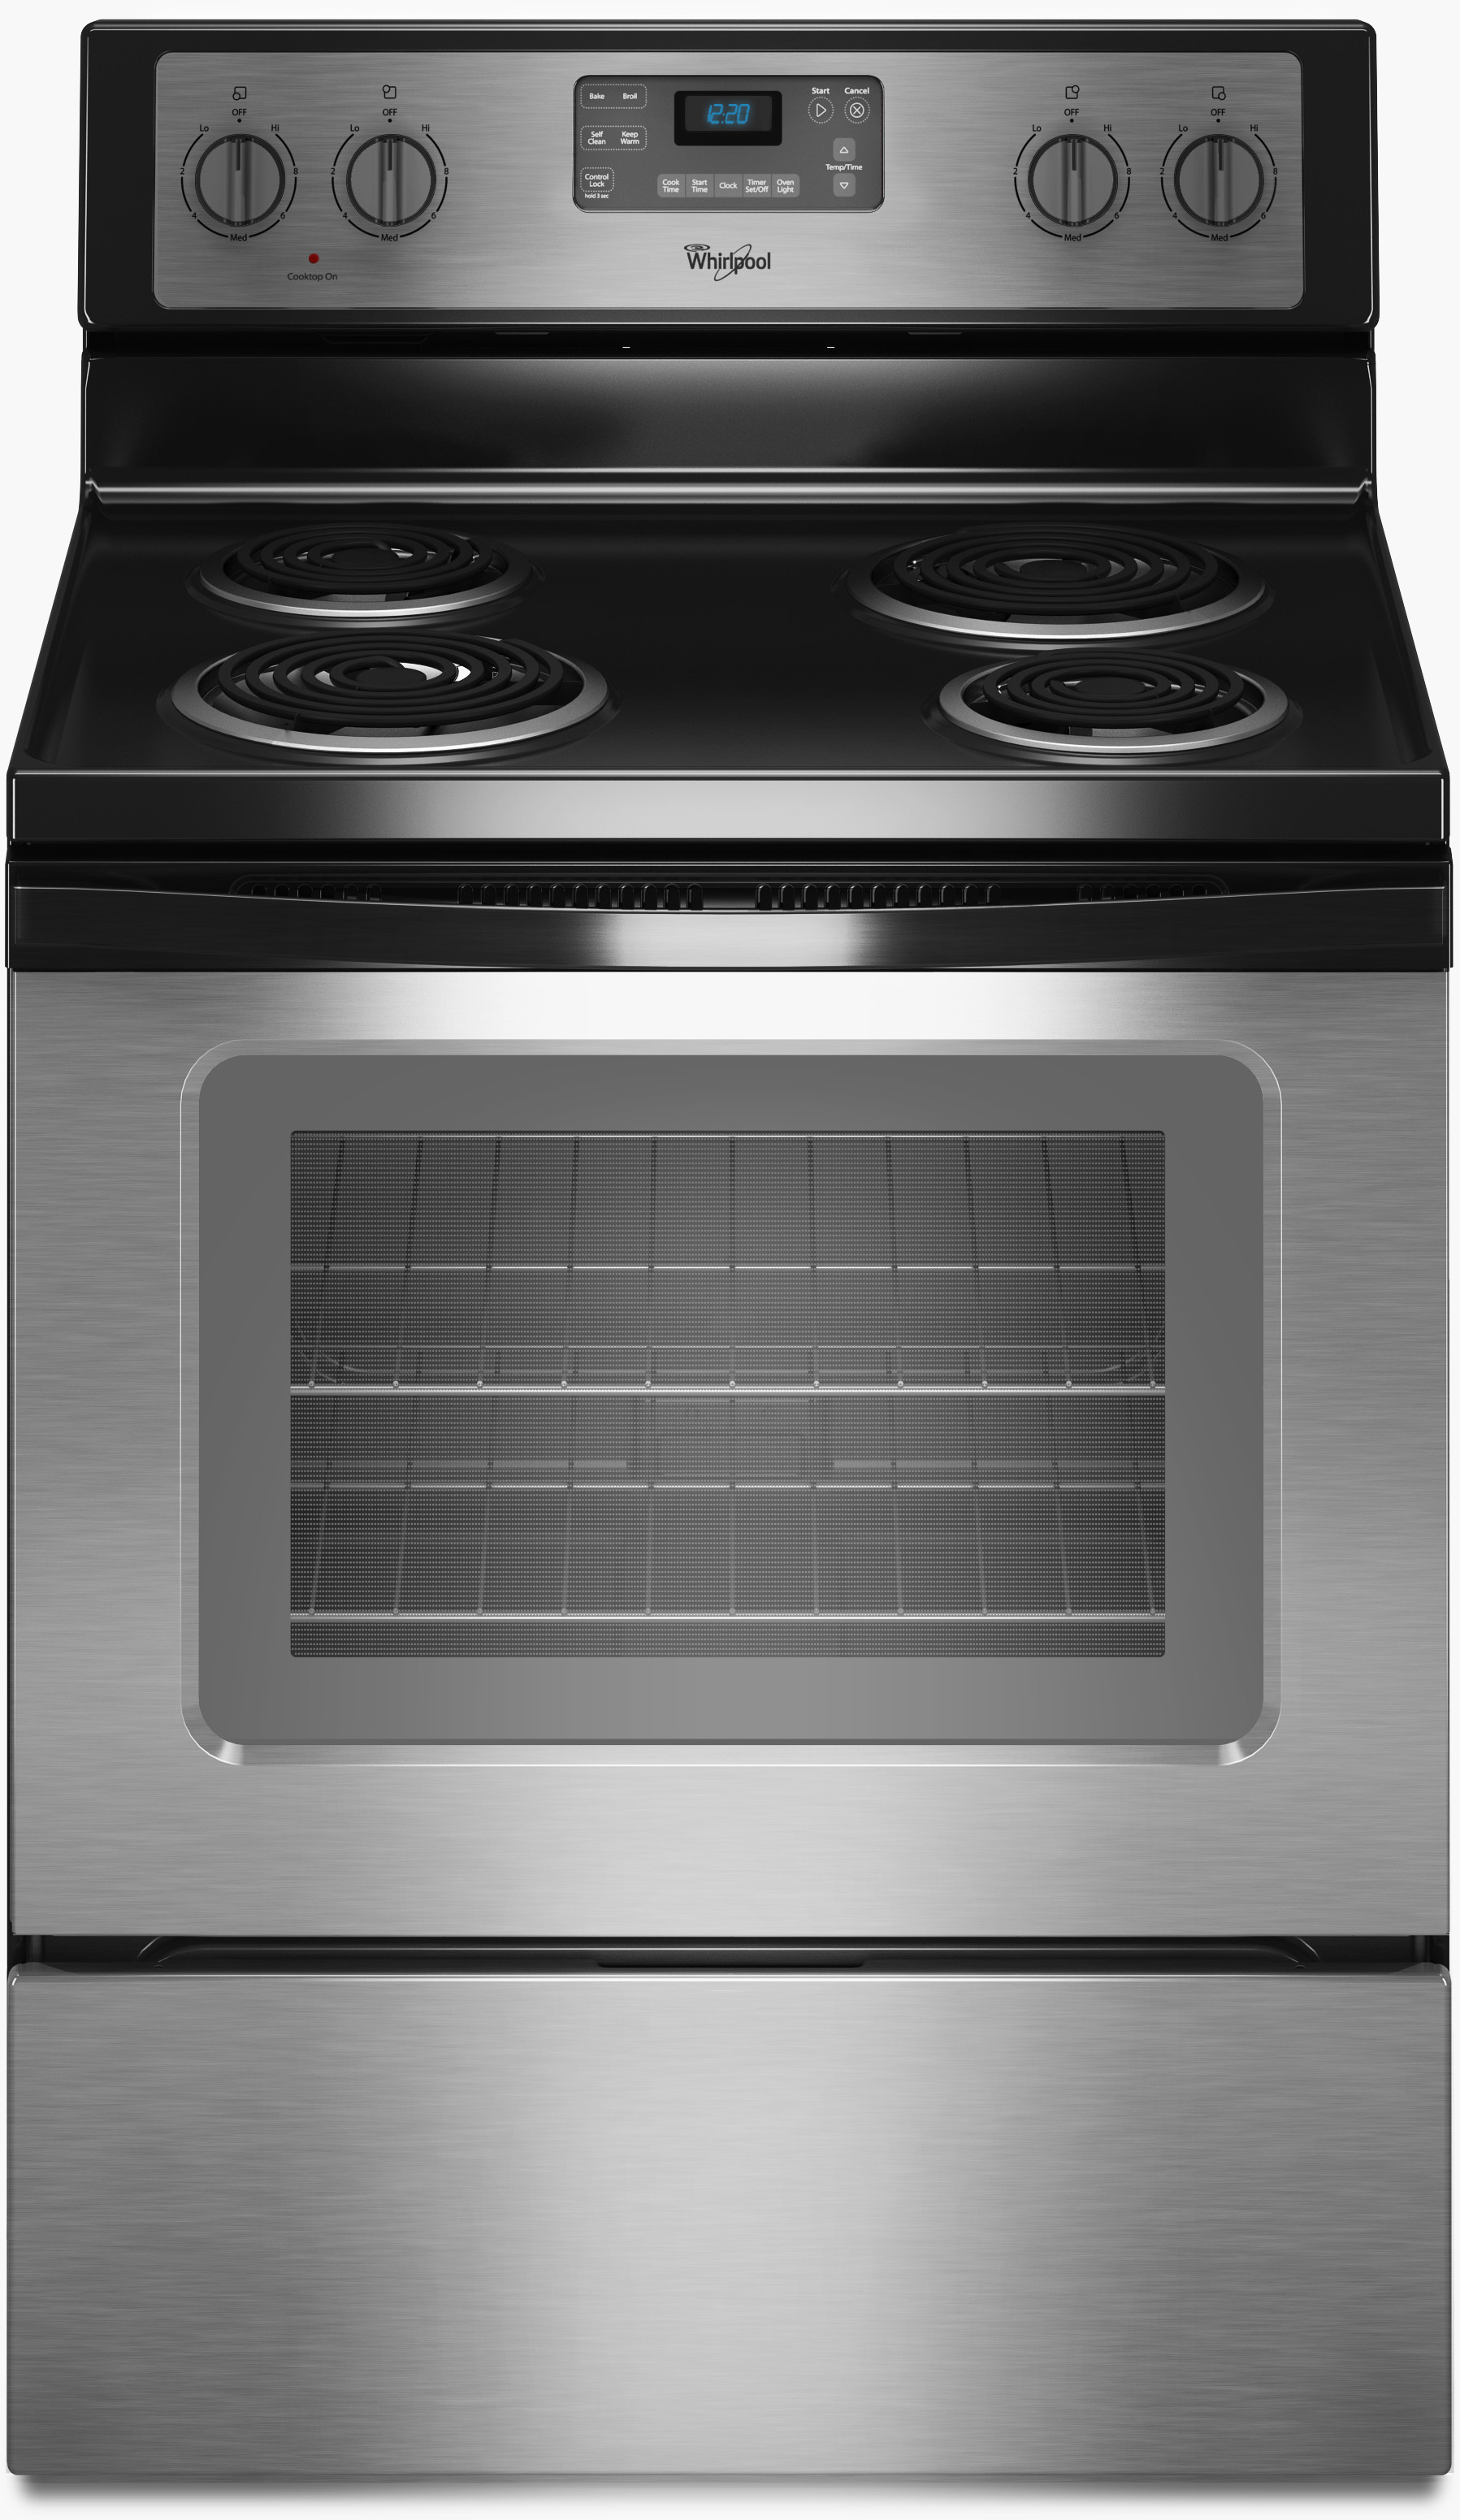 Whirlpool white ice electric range reviews - Whirlpool White Ice Electric Range Reviews 53